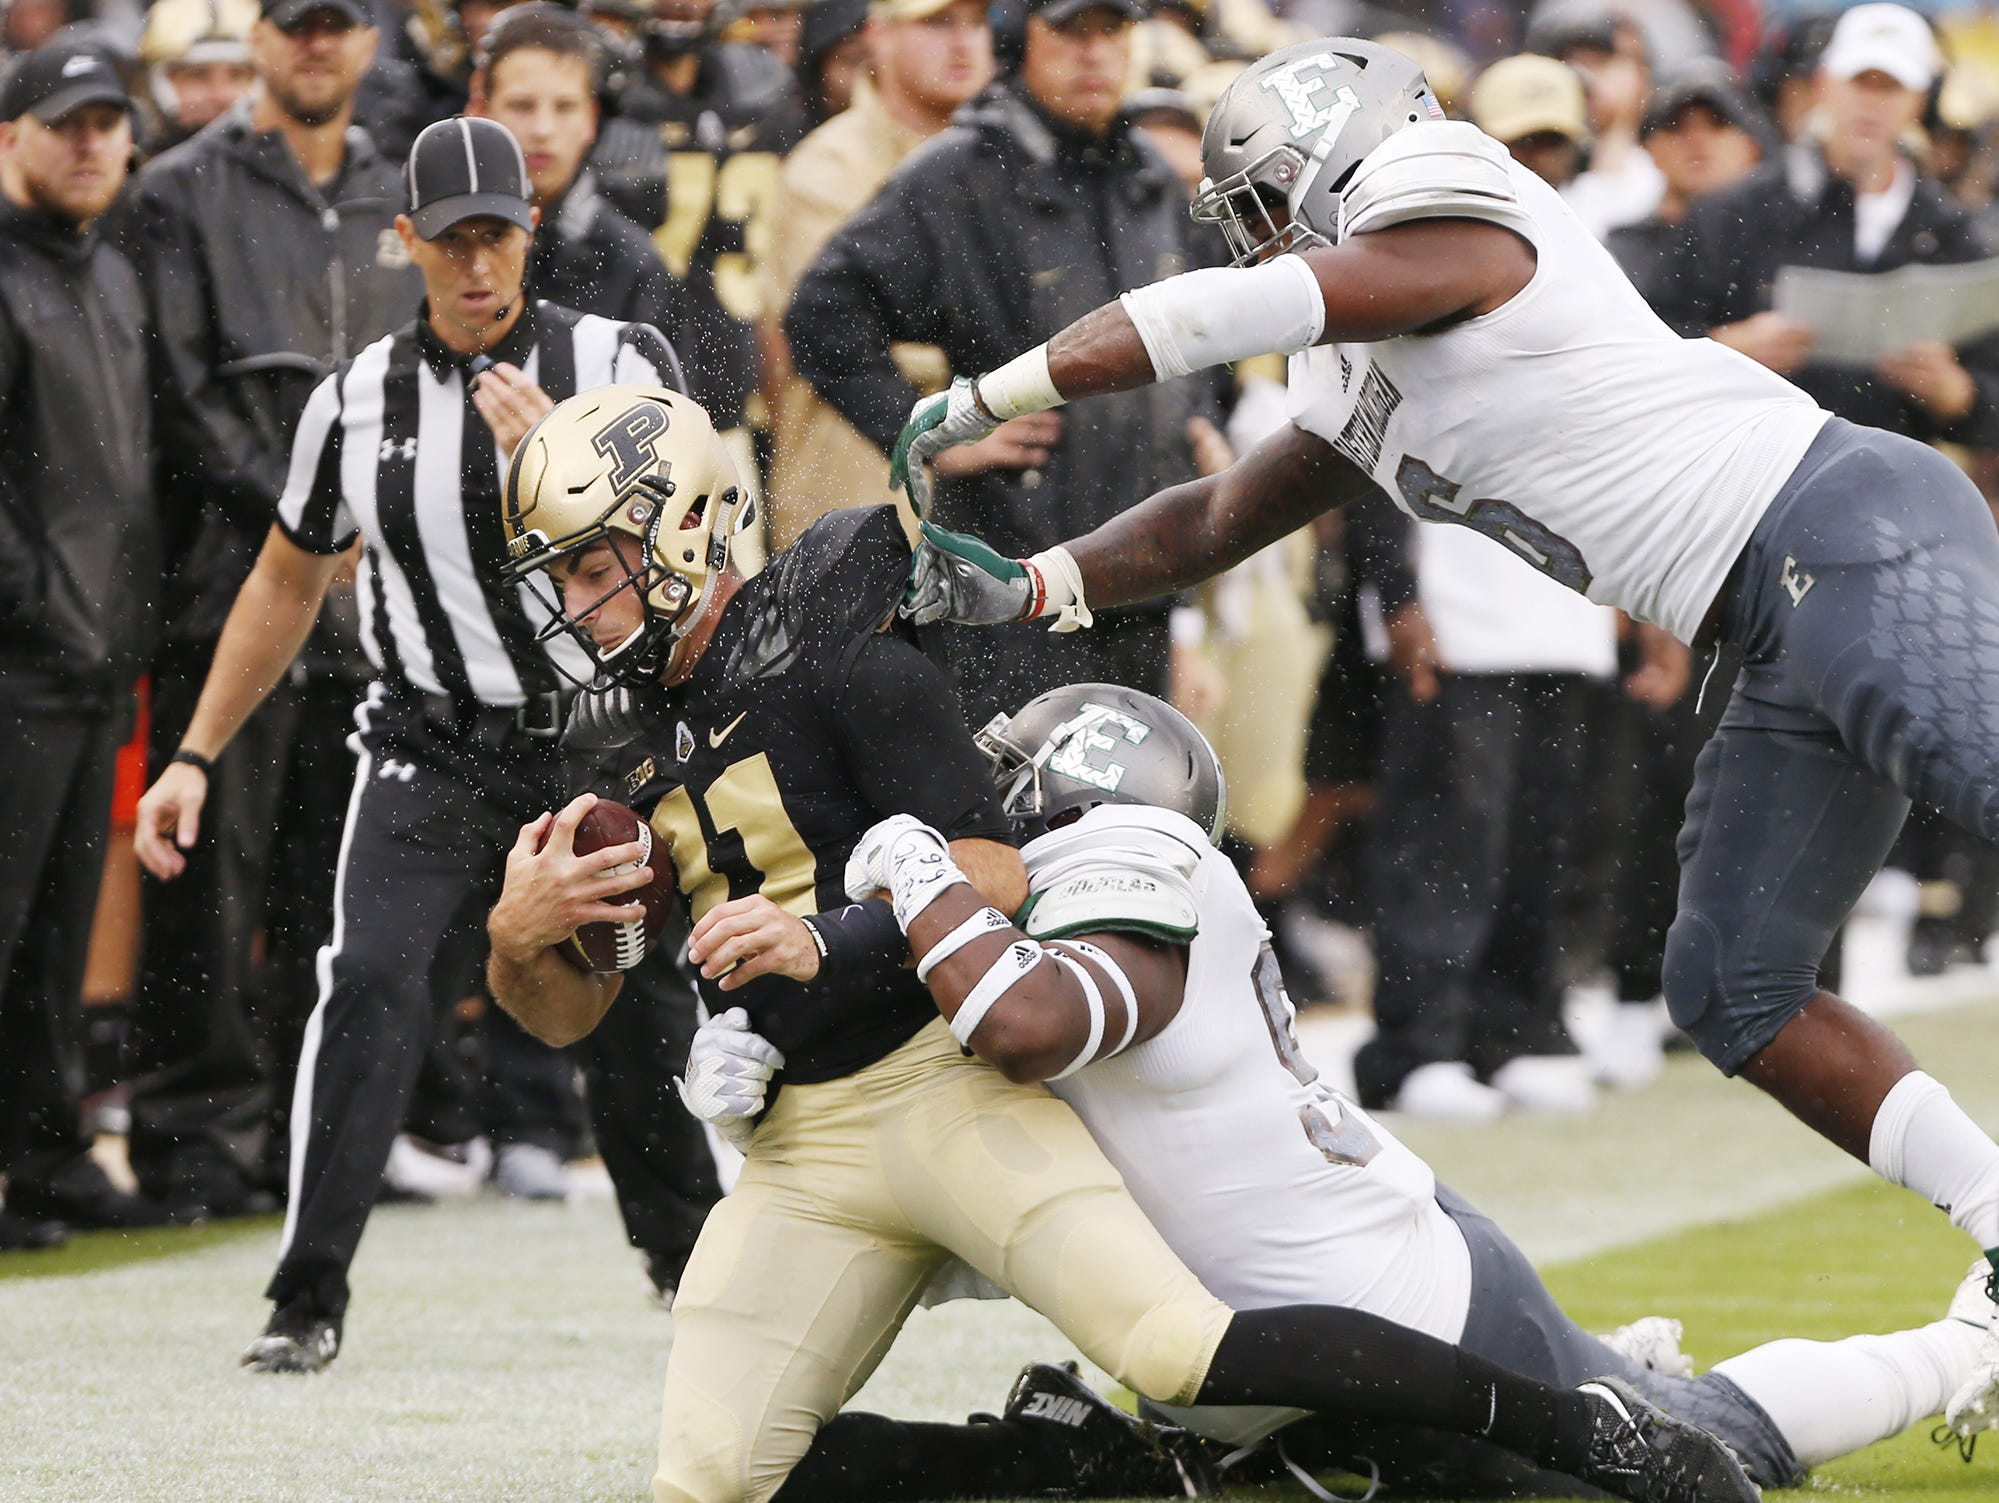 Purdue quarterback David Blough is brought down by the Eastern Michigan defense after a carry in the first half Saturday, September 8, 2018, in West Lafayette. Purdue fell to Eastern Michigan 20-19.